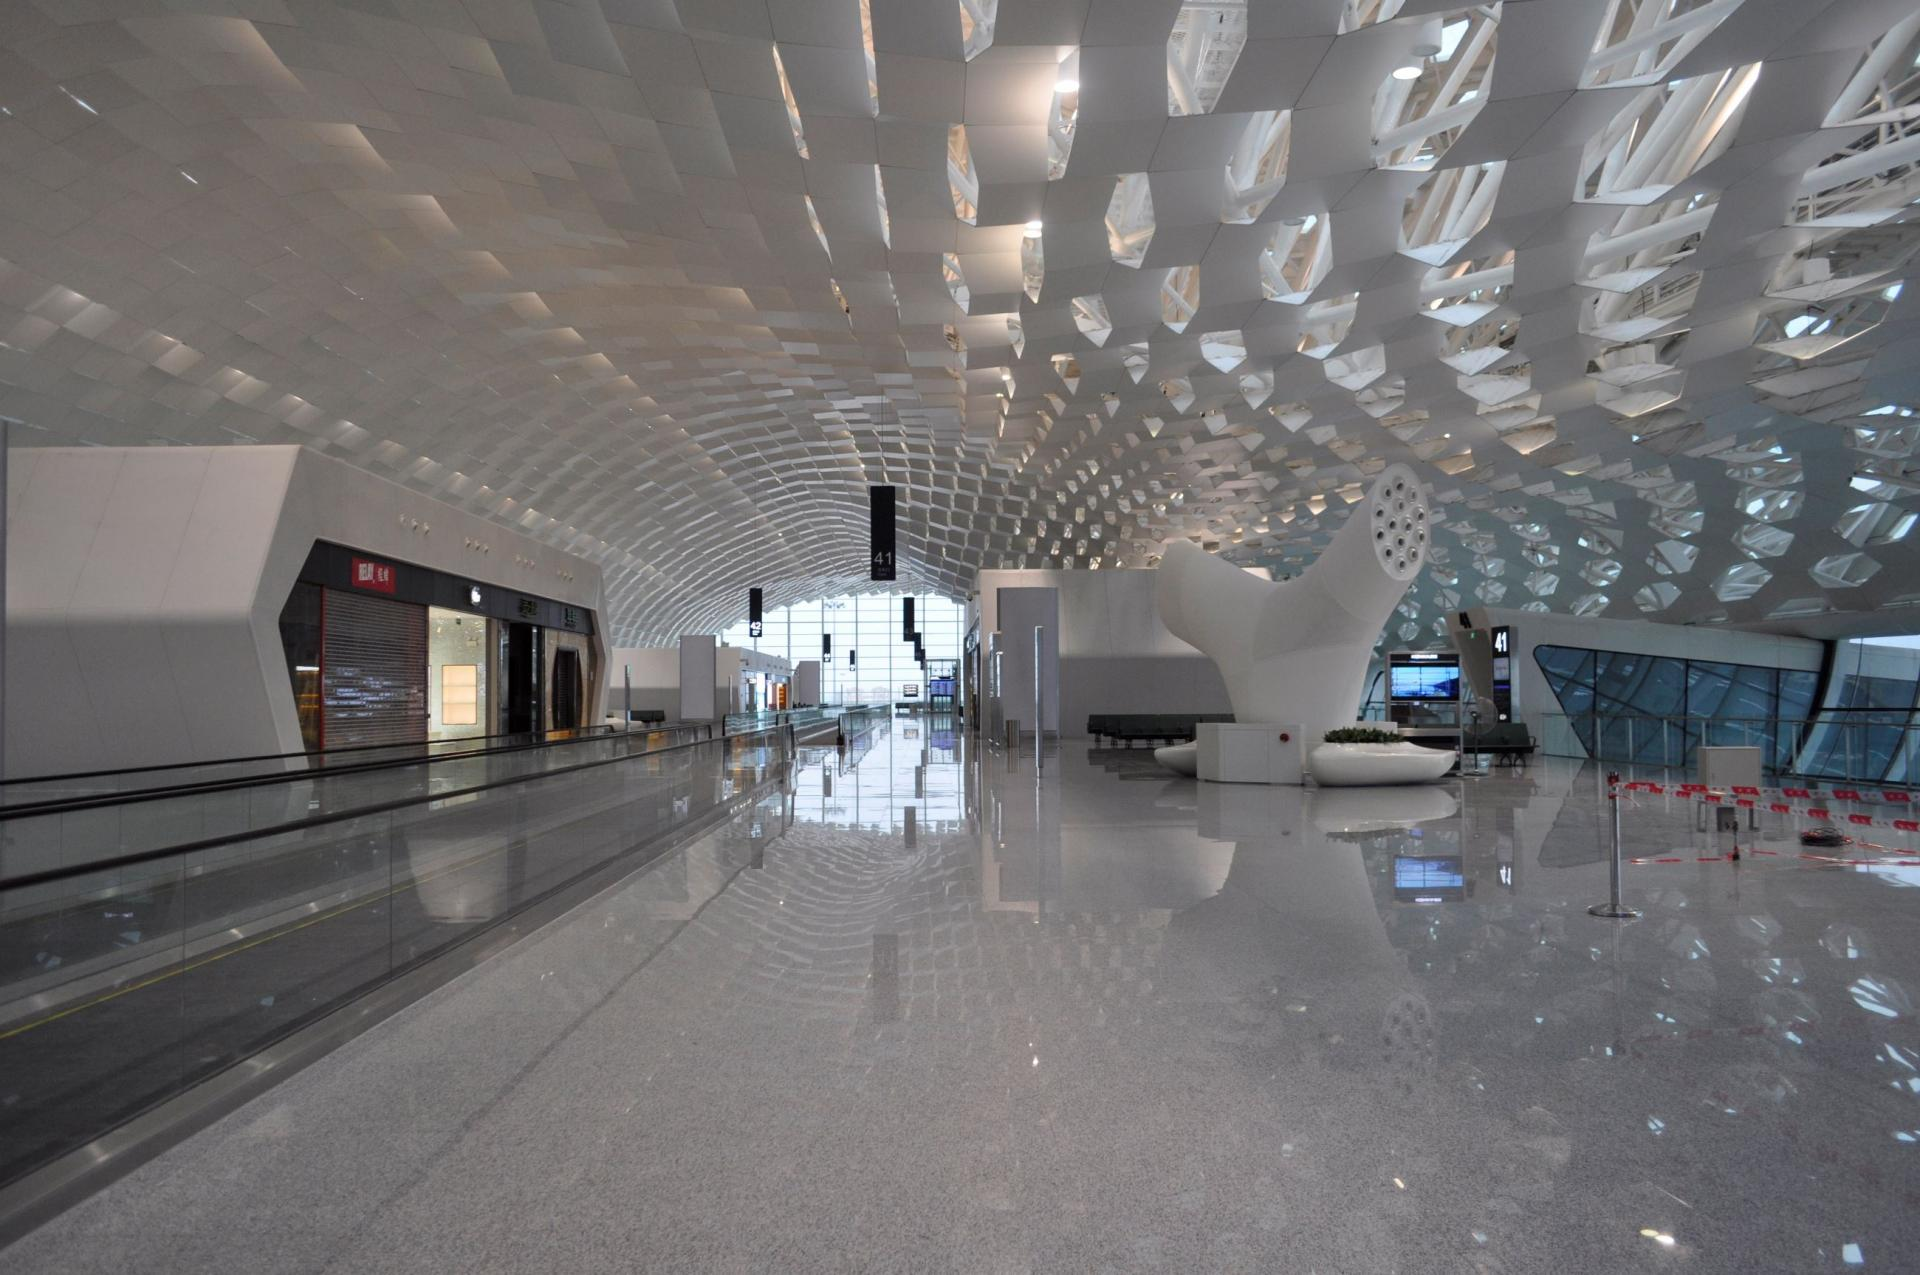 The honeycomb pattern is repeated throughout the terminal.